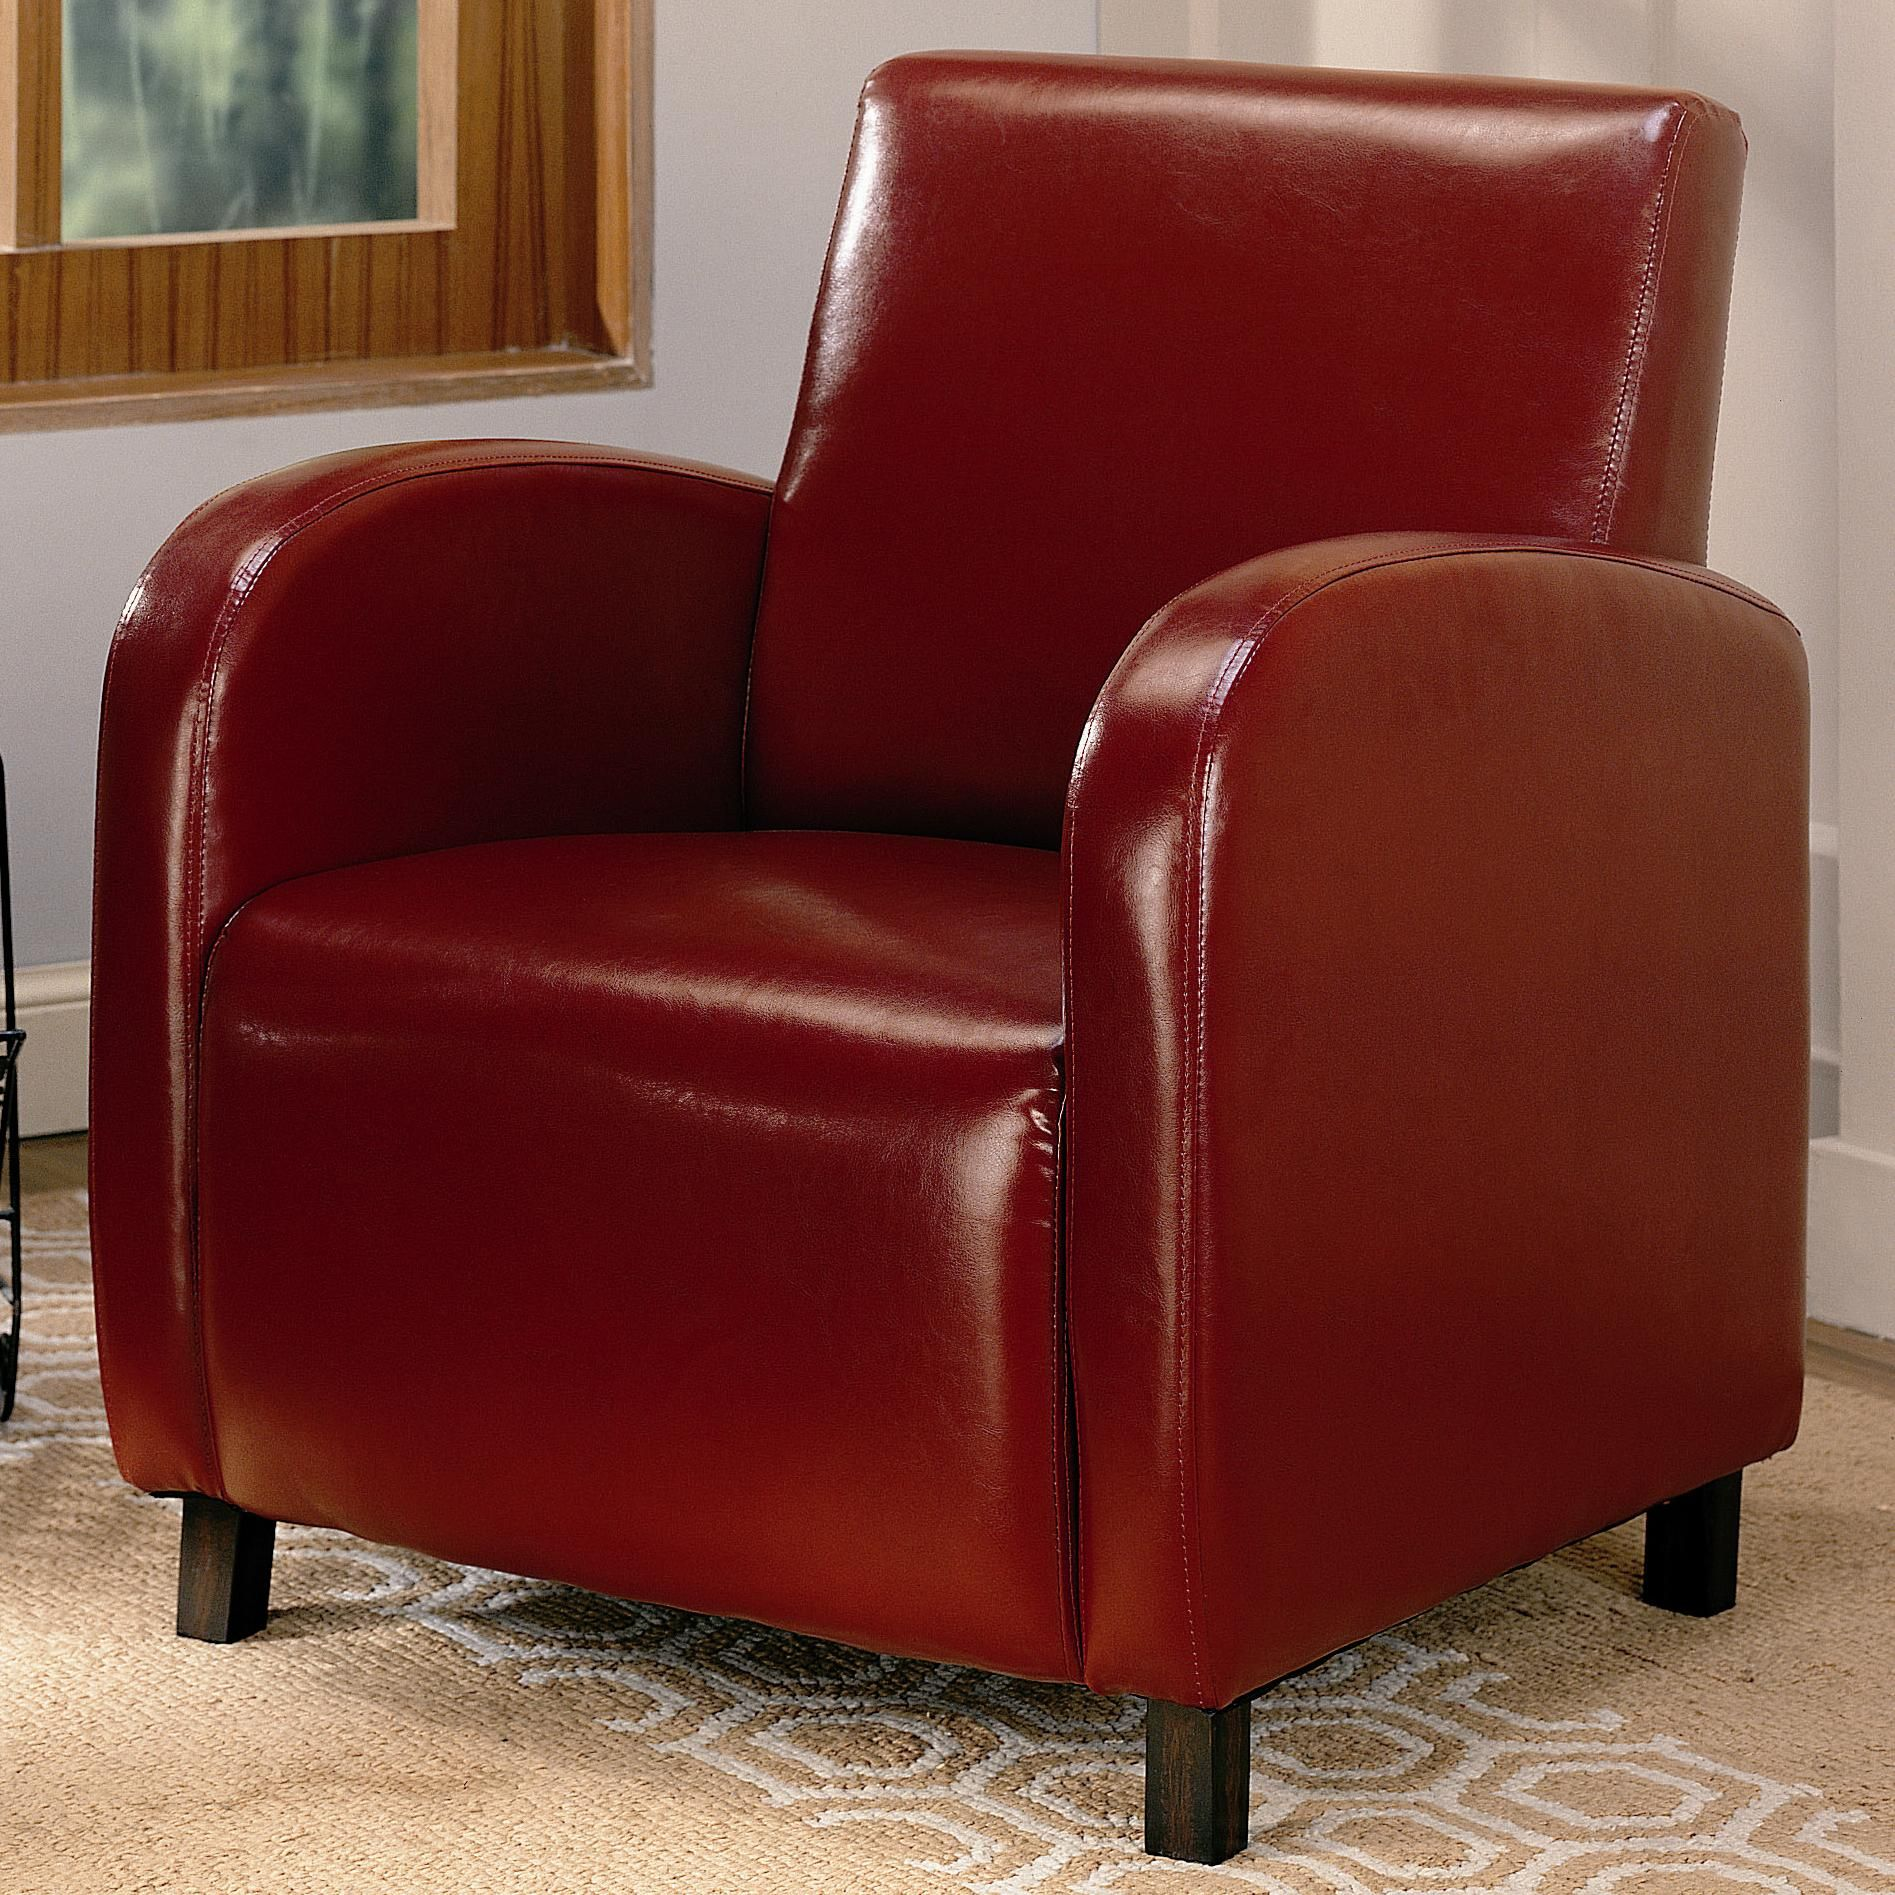 Merveilleux Deep Red Leather Like Accent Chair, Small Office Waiting Area Chair    Perfect For Small Spaces, The Clean Lines And Art Deco Look Of This Chair  Are Almost ...